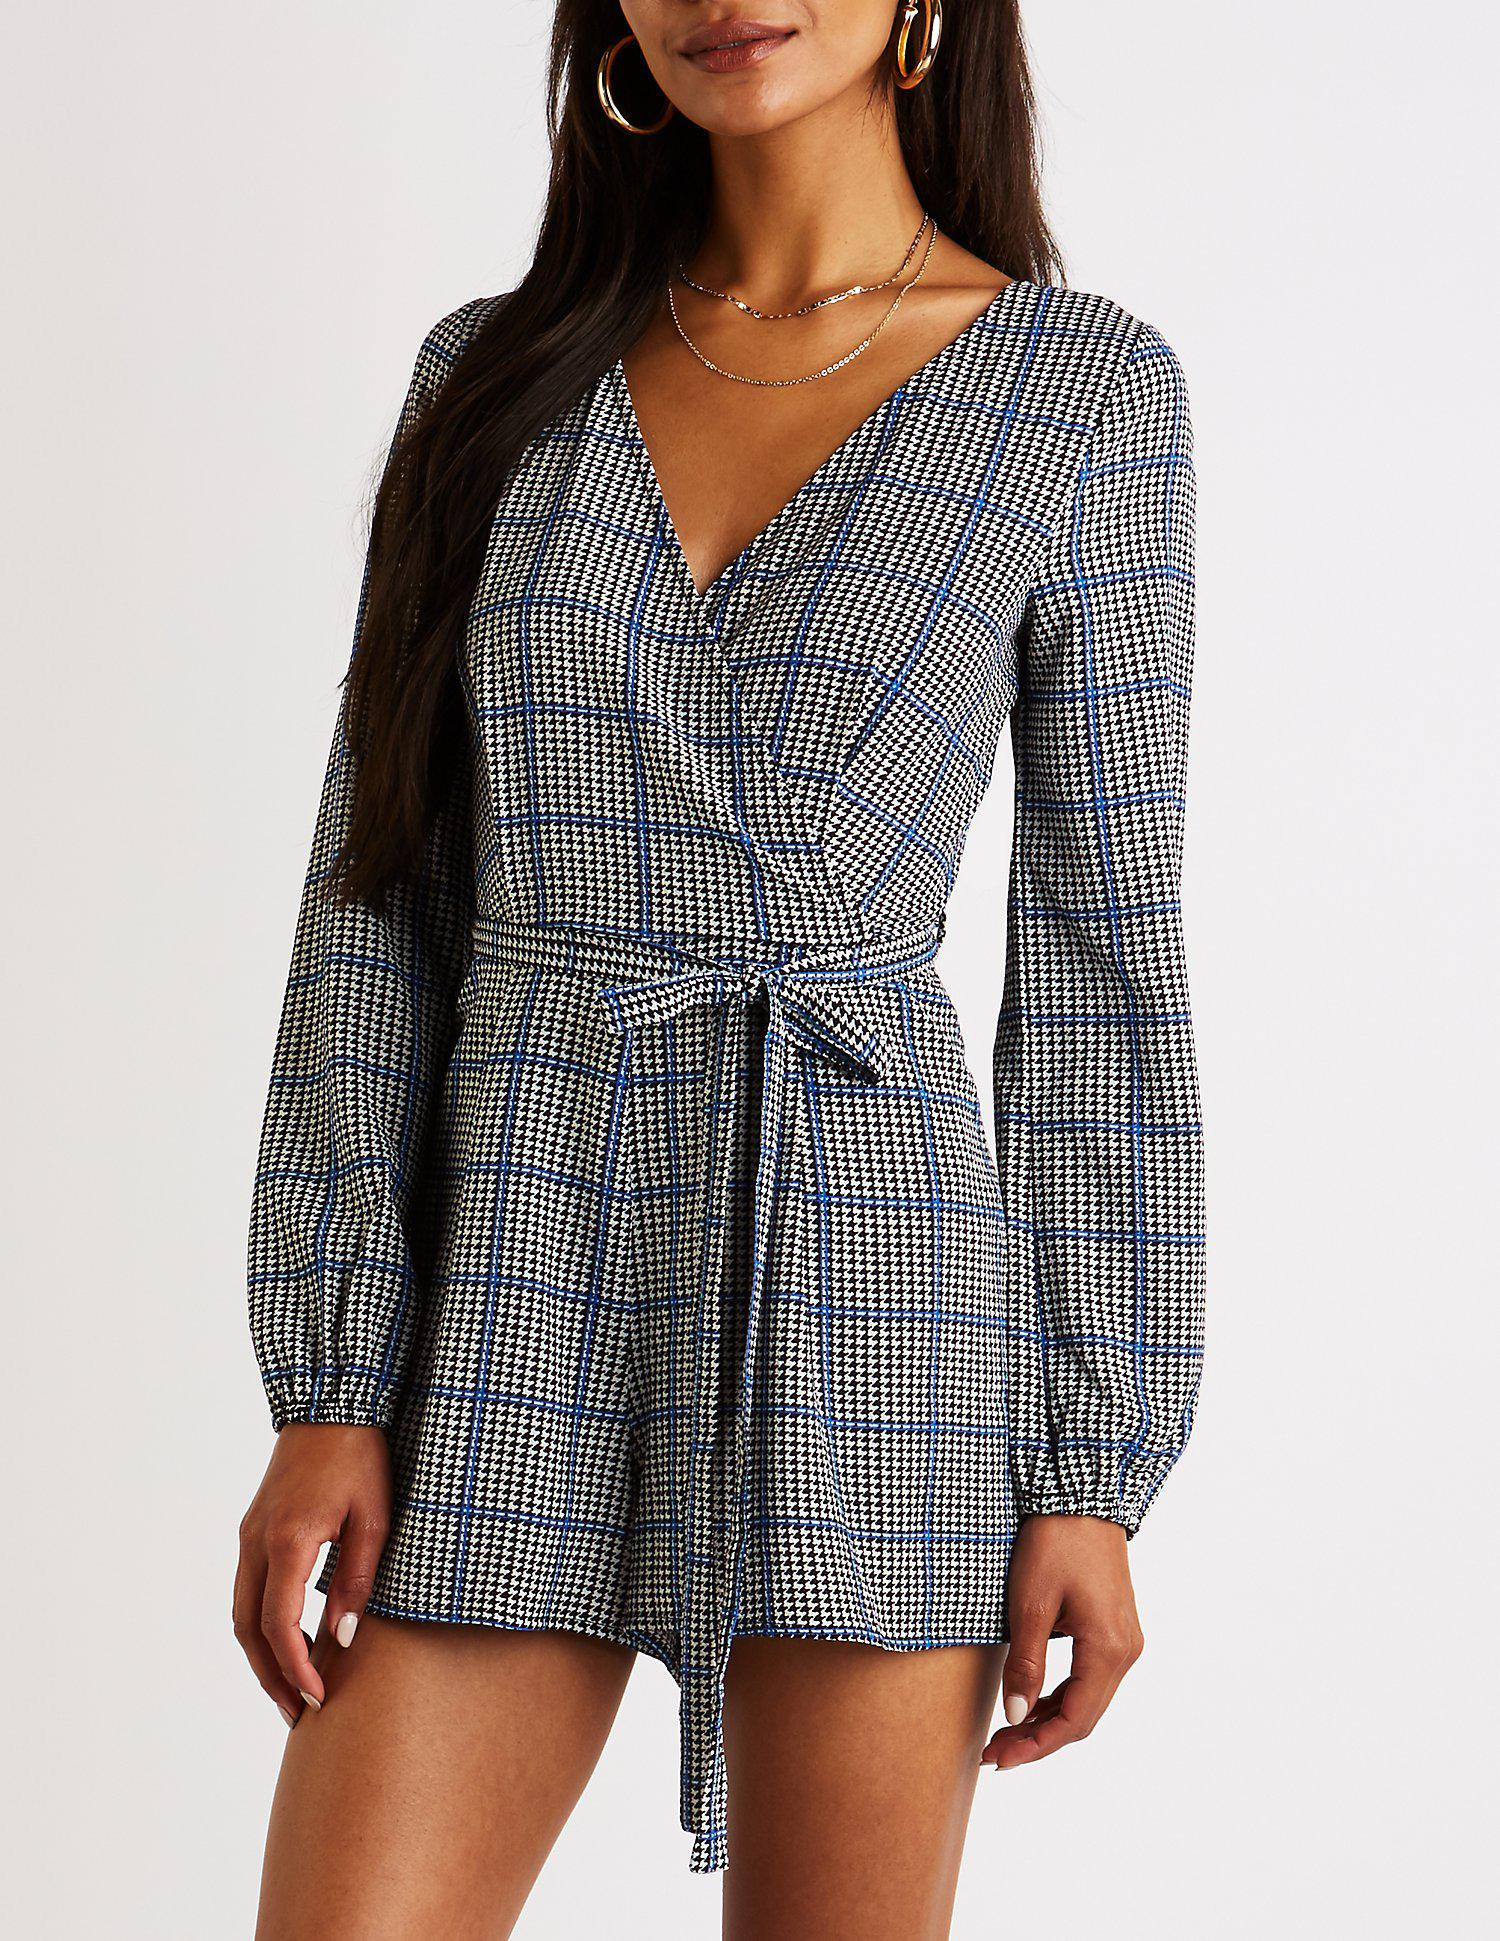 7eb56a26f18f Lyst - Charlotte Russe Houndstooth Wrap Romper in Black